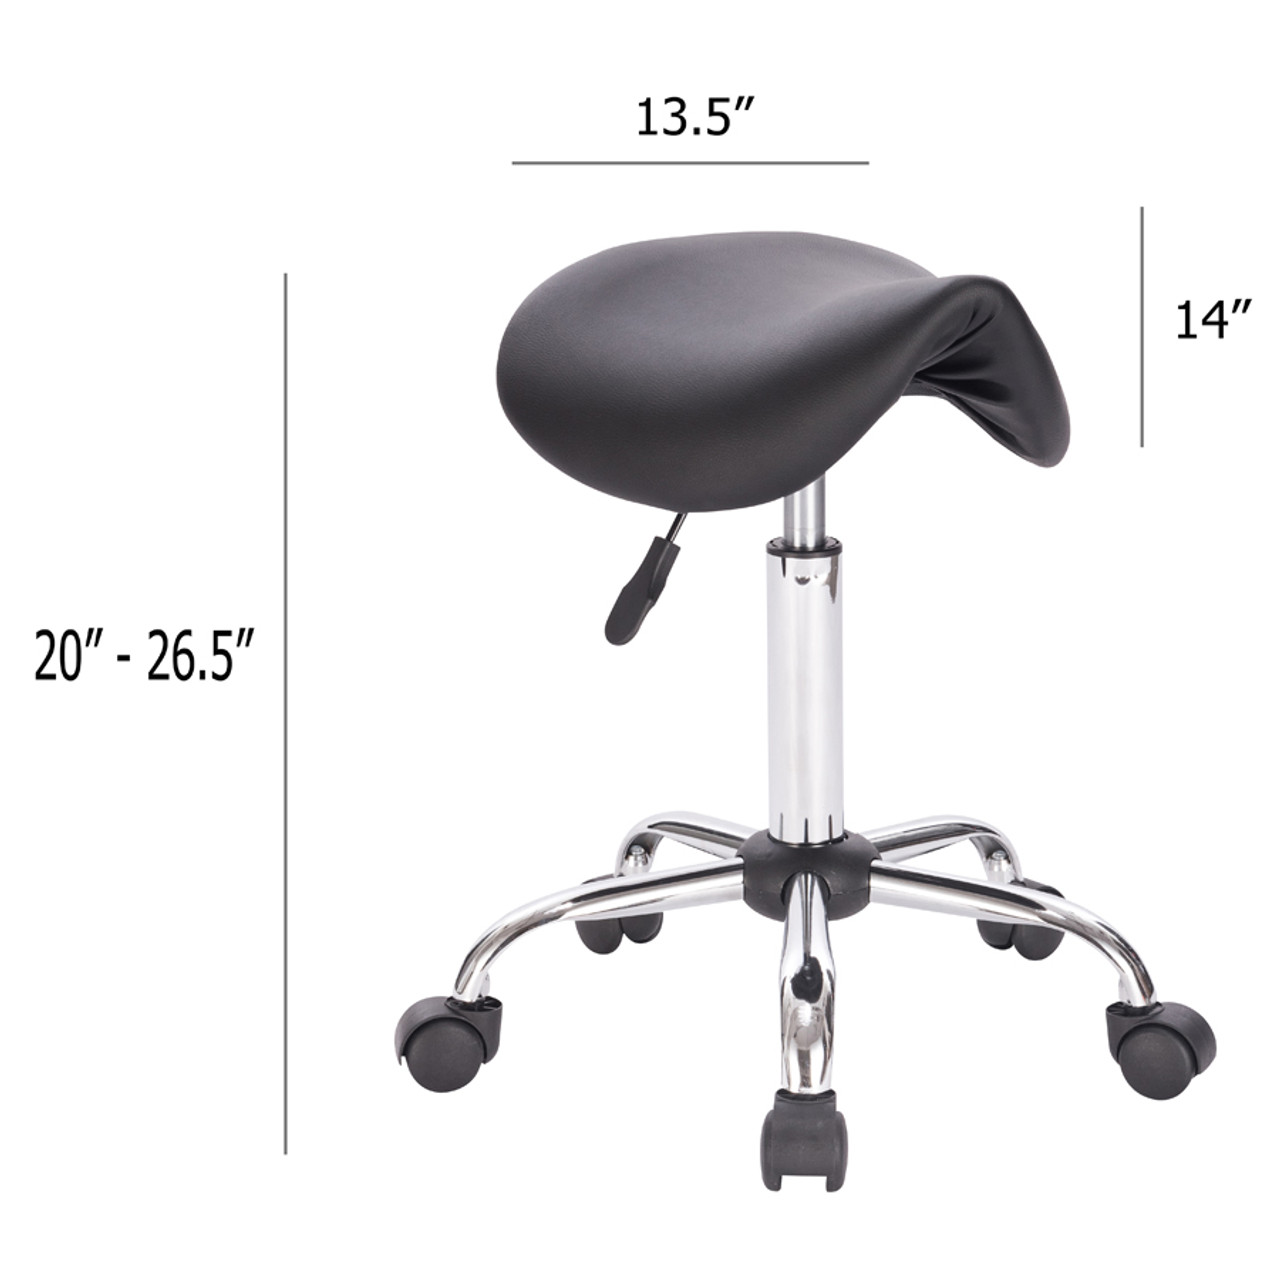 Adjustable Height Pneumatic Saddle Roller Stool with Chrome Base, Black in California, New York, New York City, Los Angeles, San Francisco, Pennsylvania, Washington DC, Virginia, Maryland